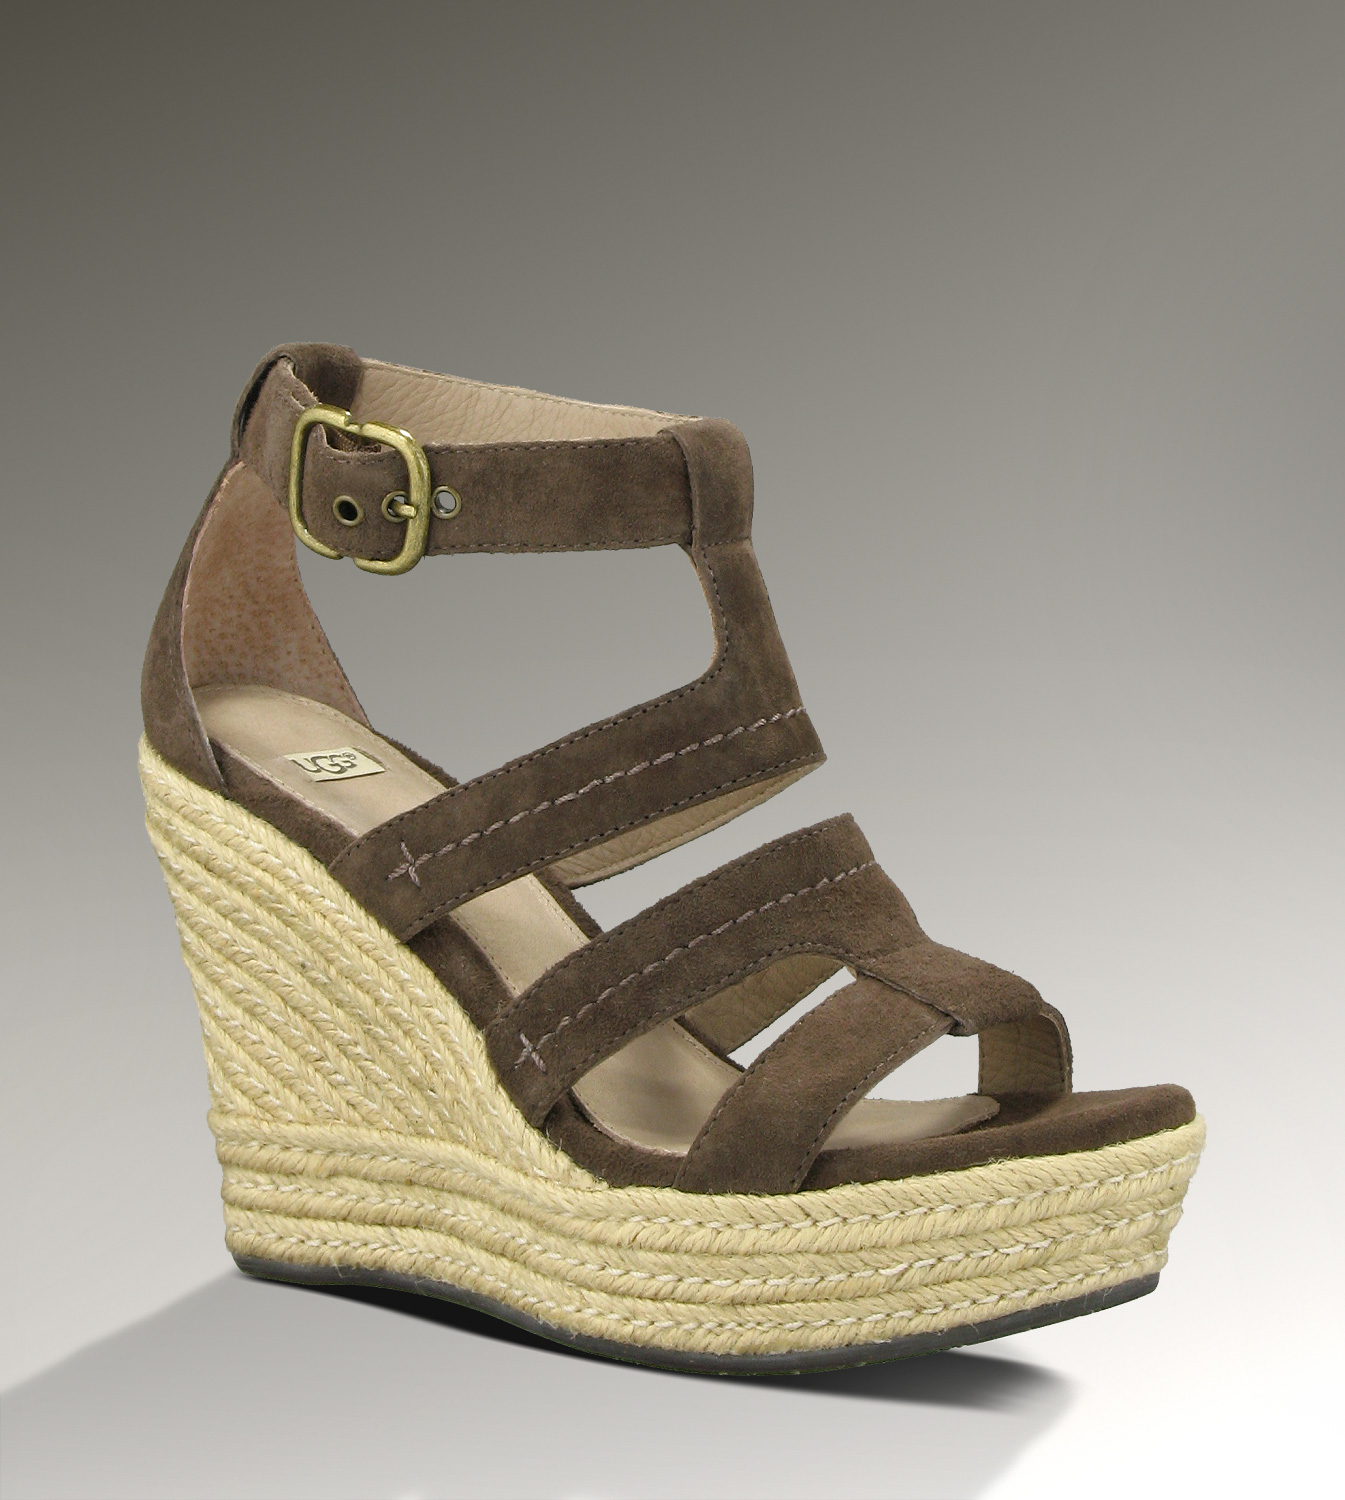 UGG Lauri 1000403 Chocolate Sandals